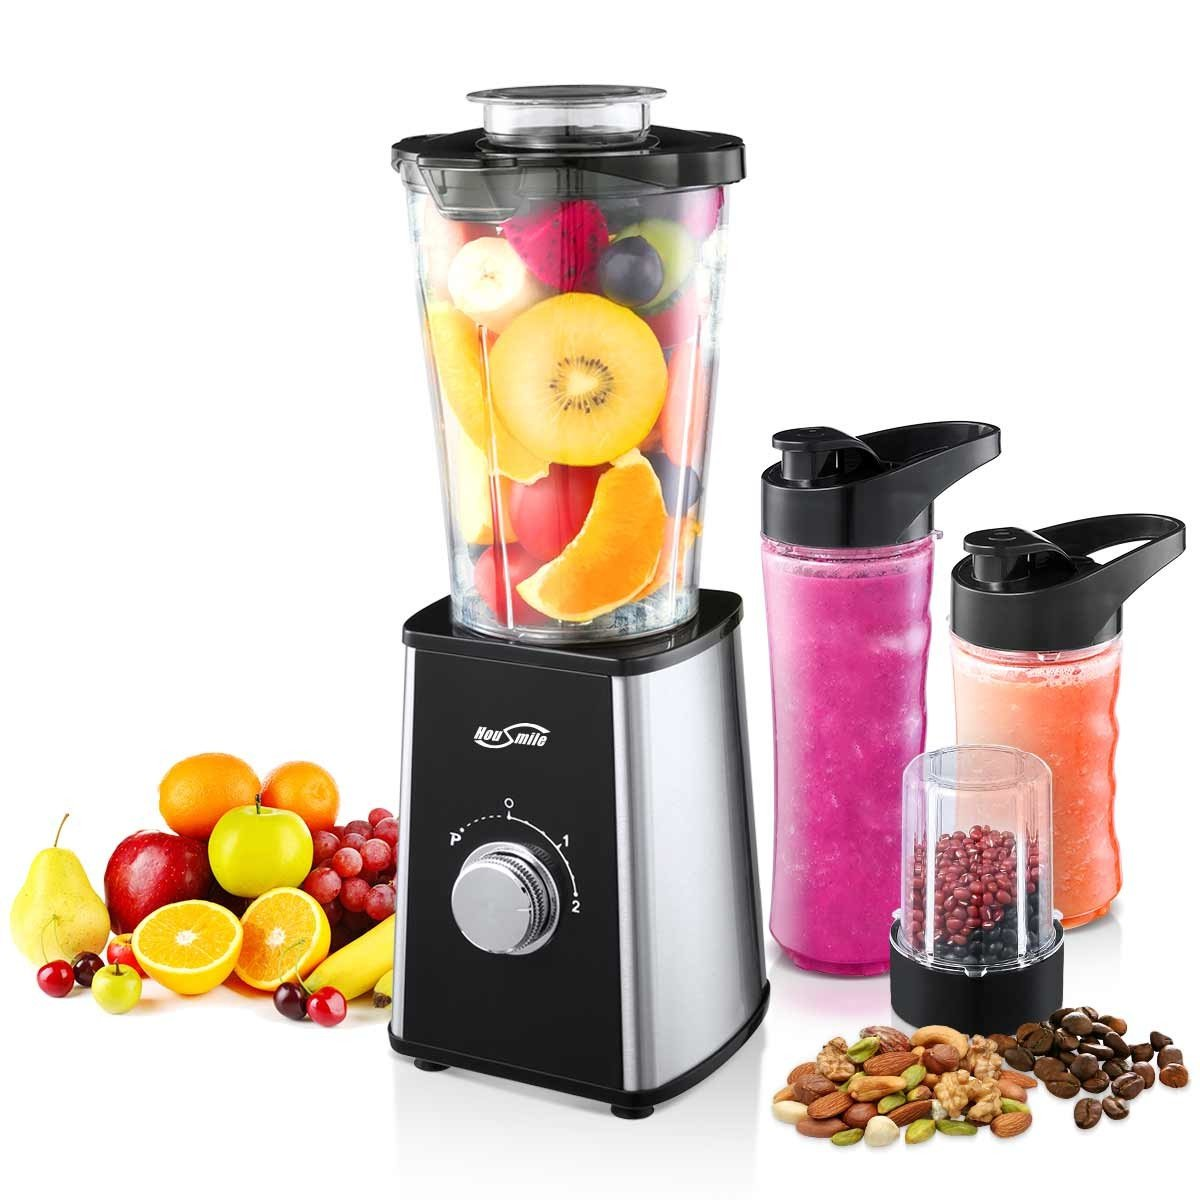 Housmile Smoothie Blender, 7-Piece Countertop with 300 Watt Base, High-Speed for Shakes and Smoothies & Ice, Ice, White by Housmile